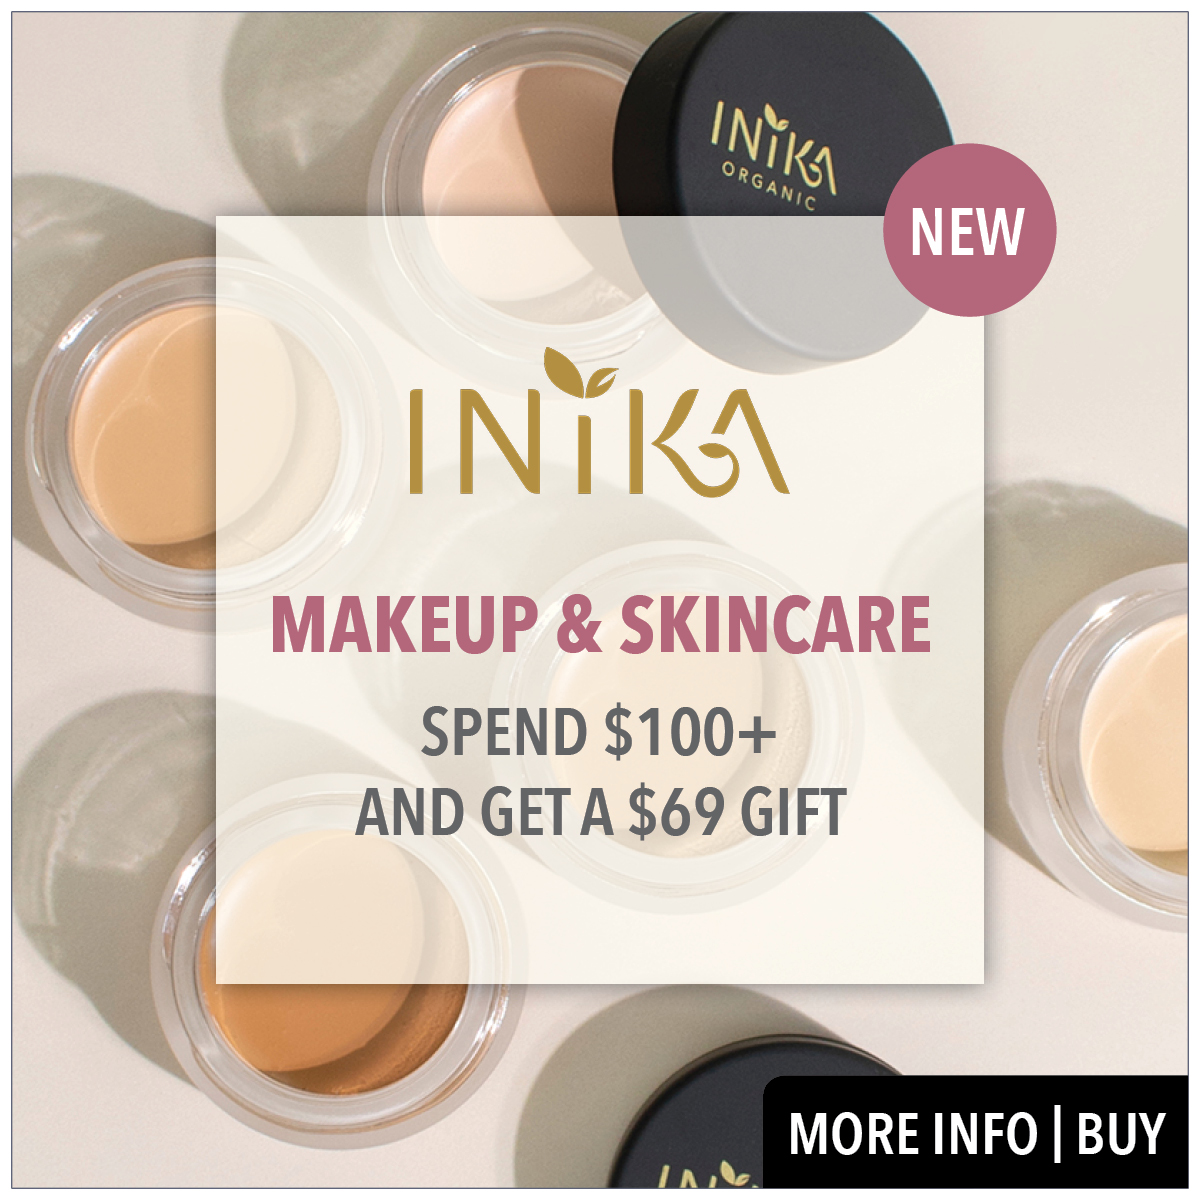 inika makeup and skincare from prodermal